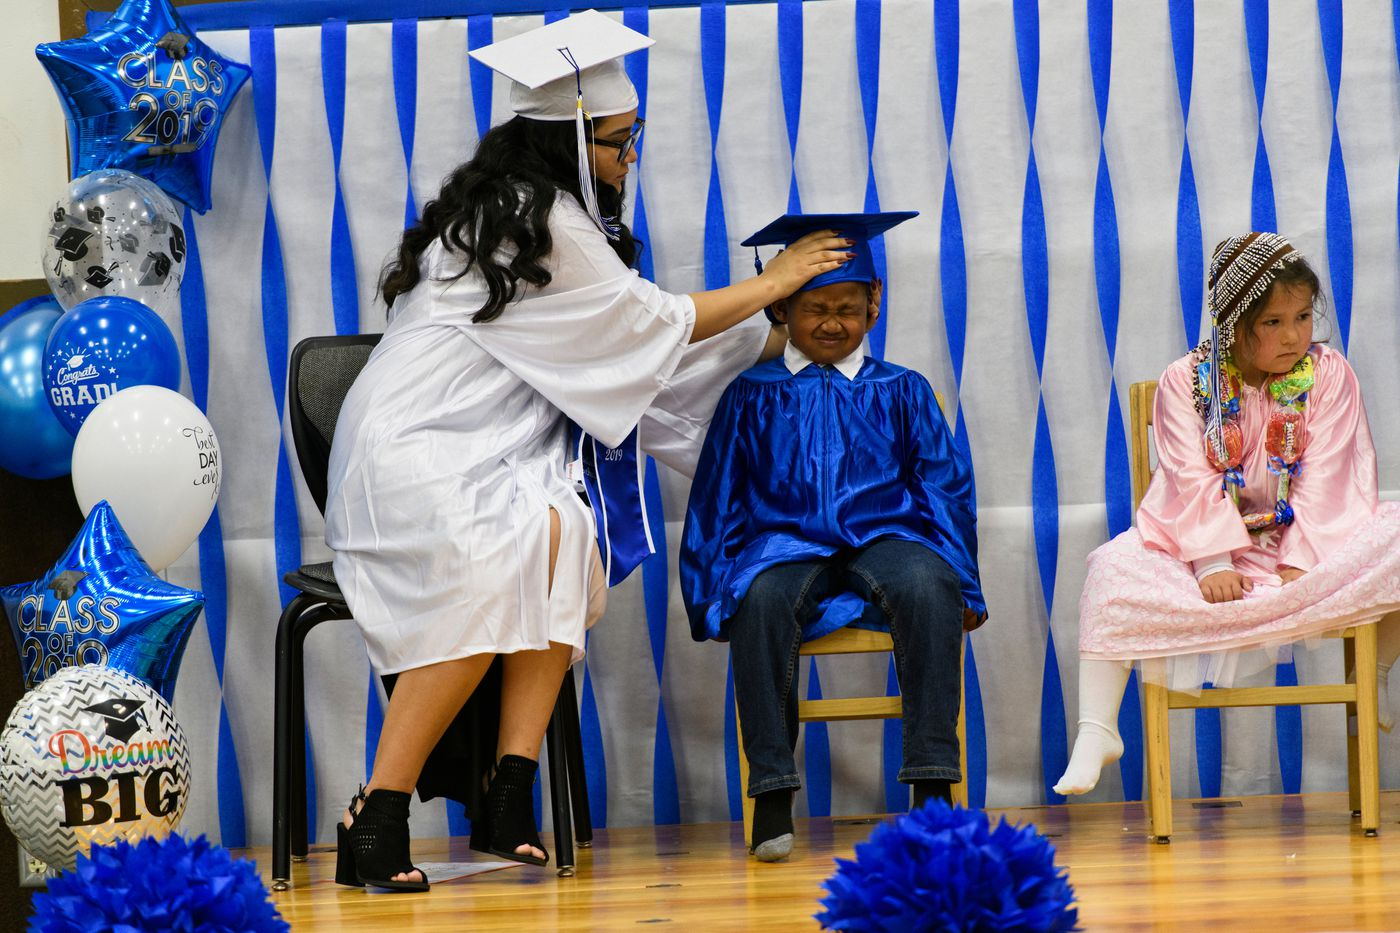 Denise Kalmakoff shares the stage with the school's incoming kindergartners, Joseph Amodo White and Serenity Simeonoff, on May 16. (Marc Lester / ADN)